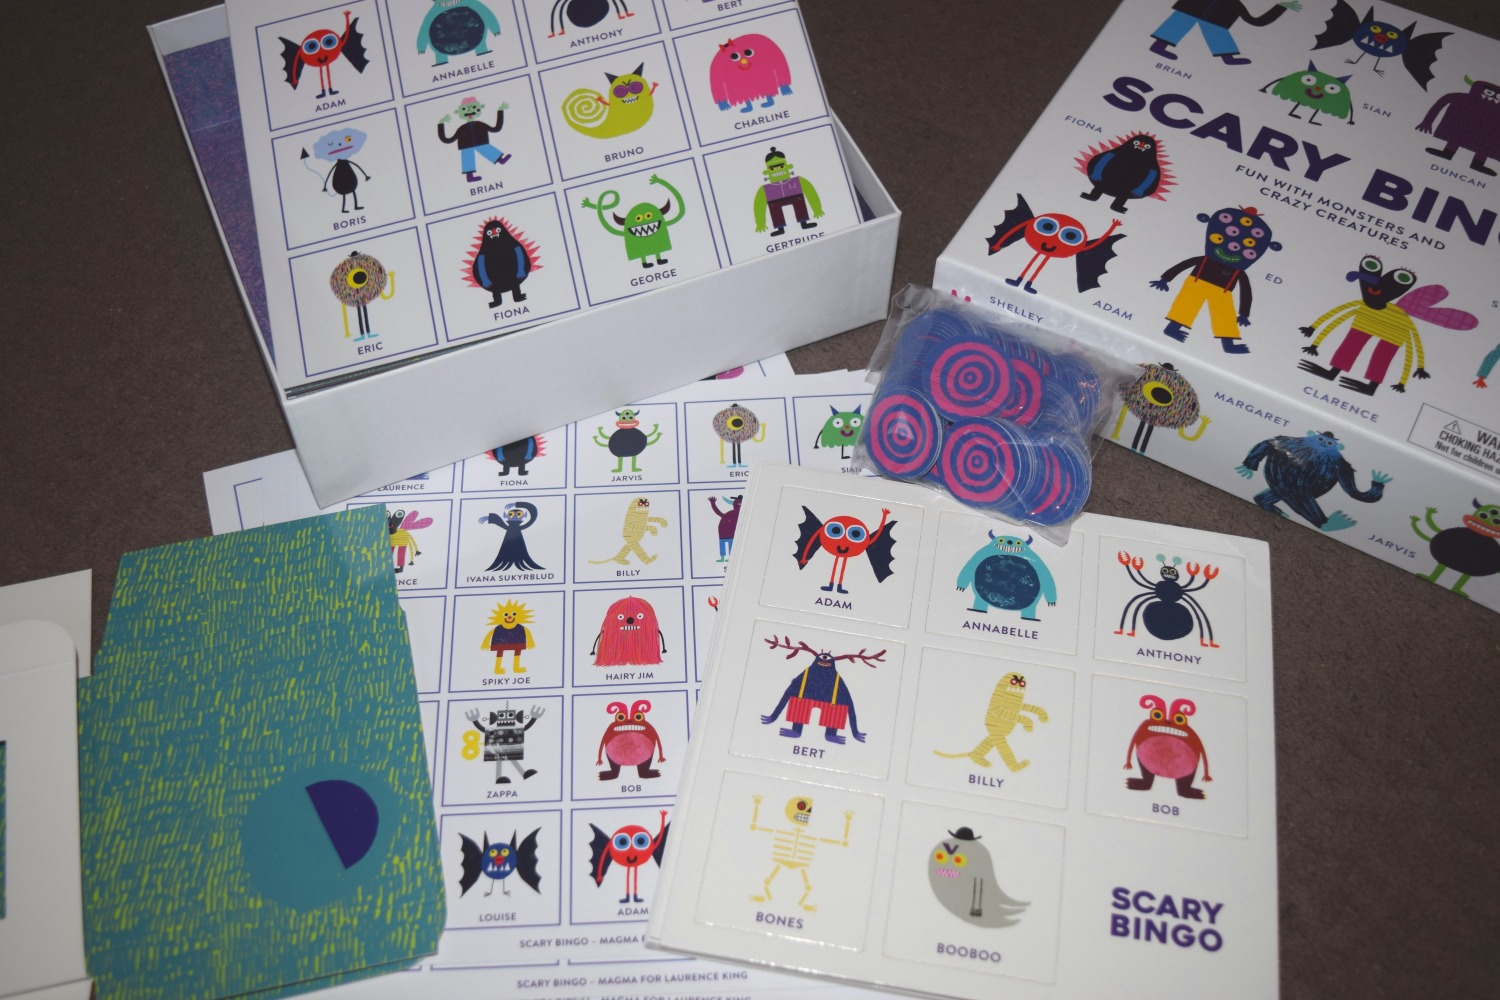 Scary Bingo Game Review & Giveaway